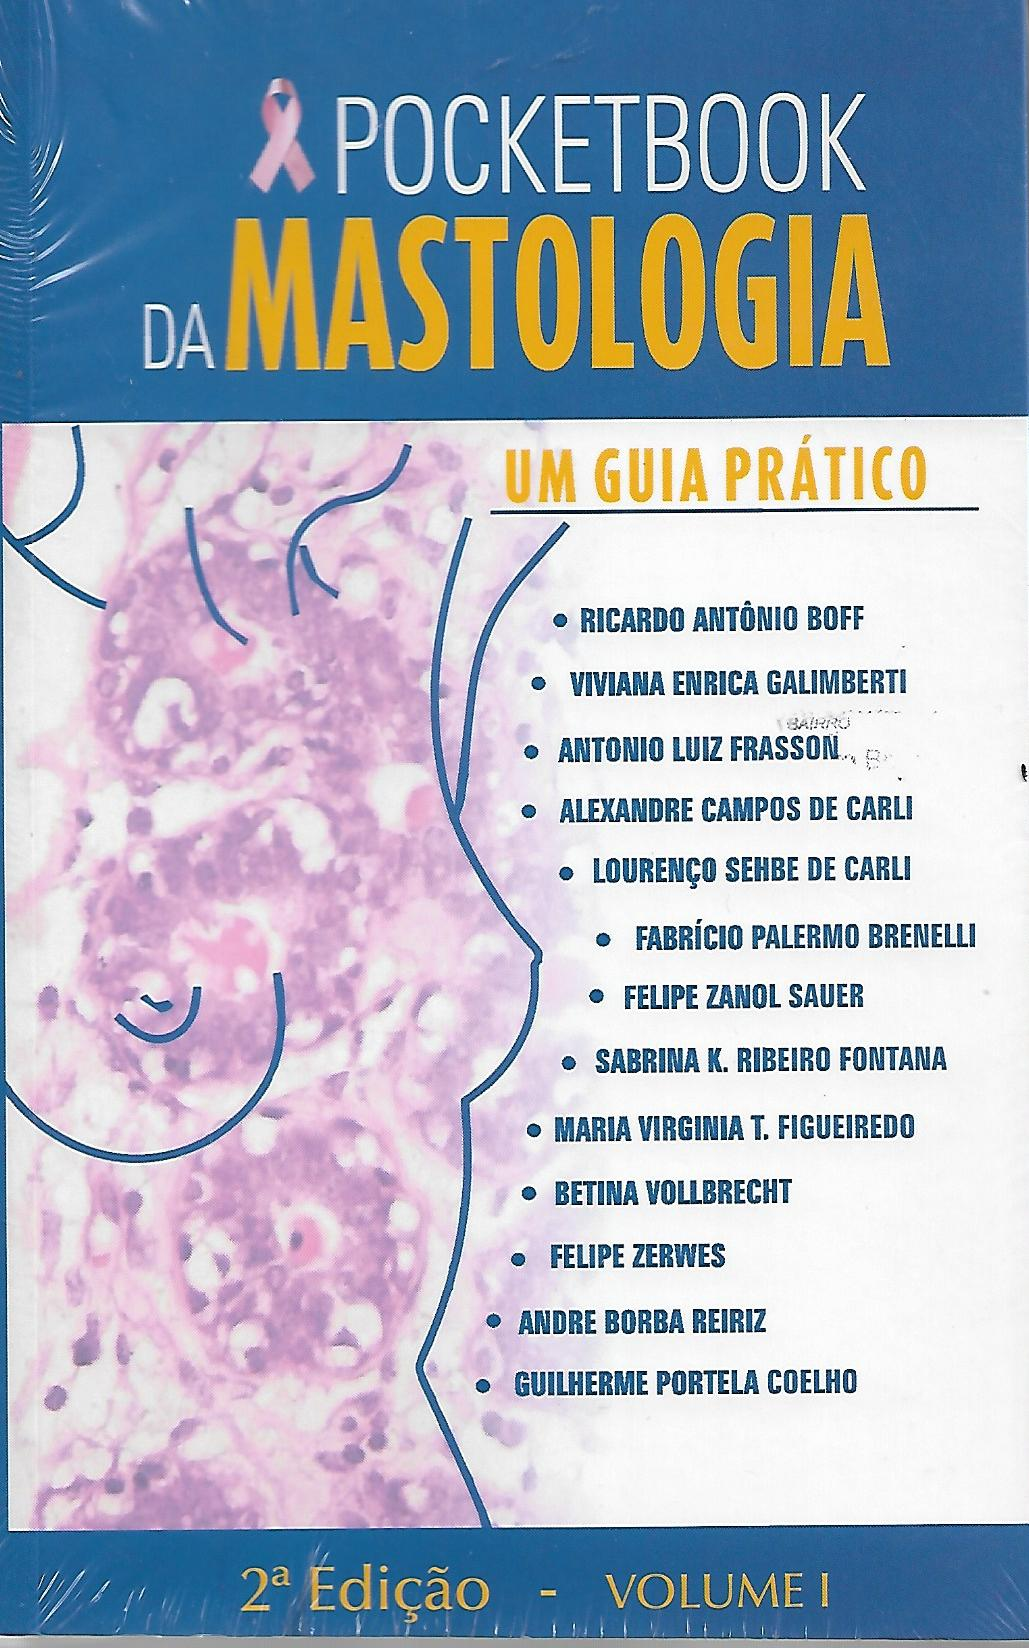 POCKETBOOK DA MASTOLOGIA - VOLUME 1 E 2 - ED. 2019